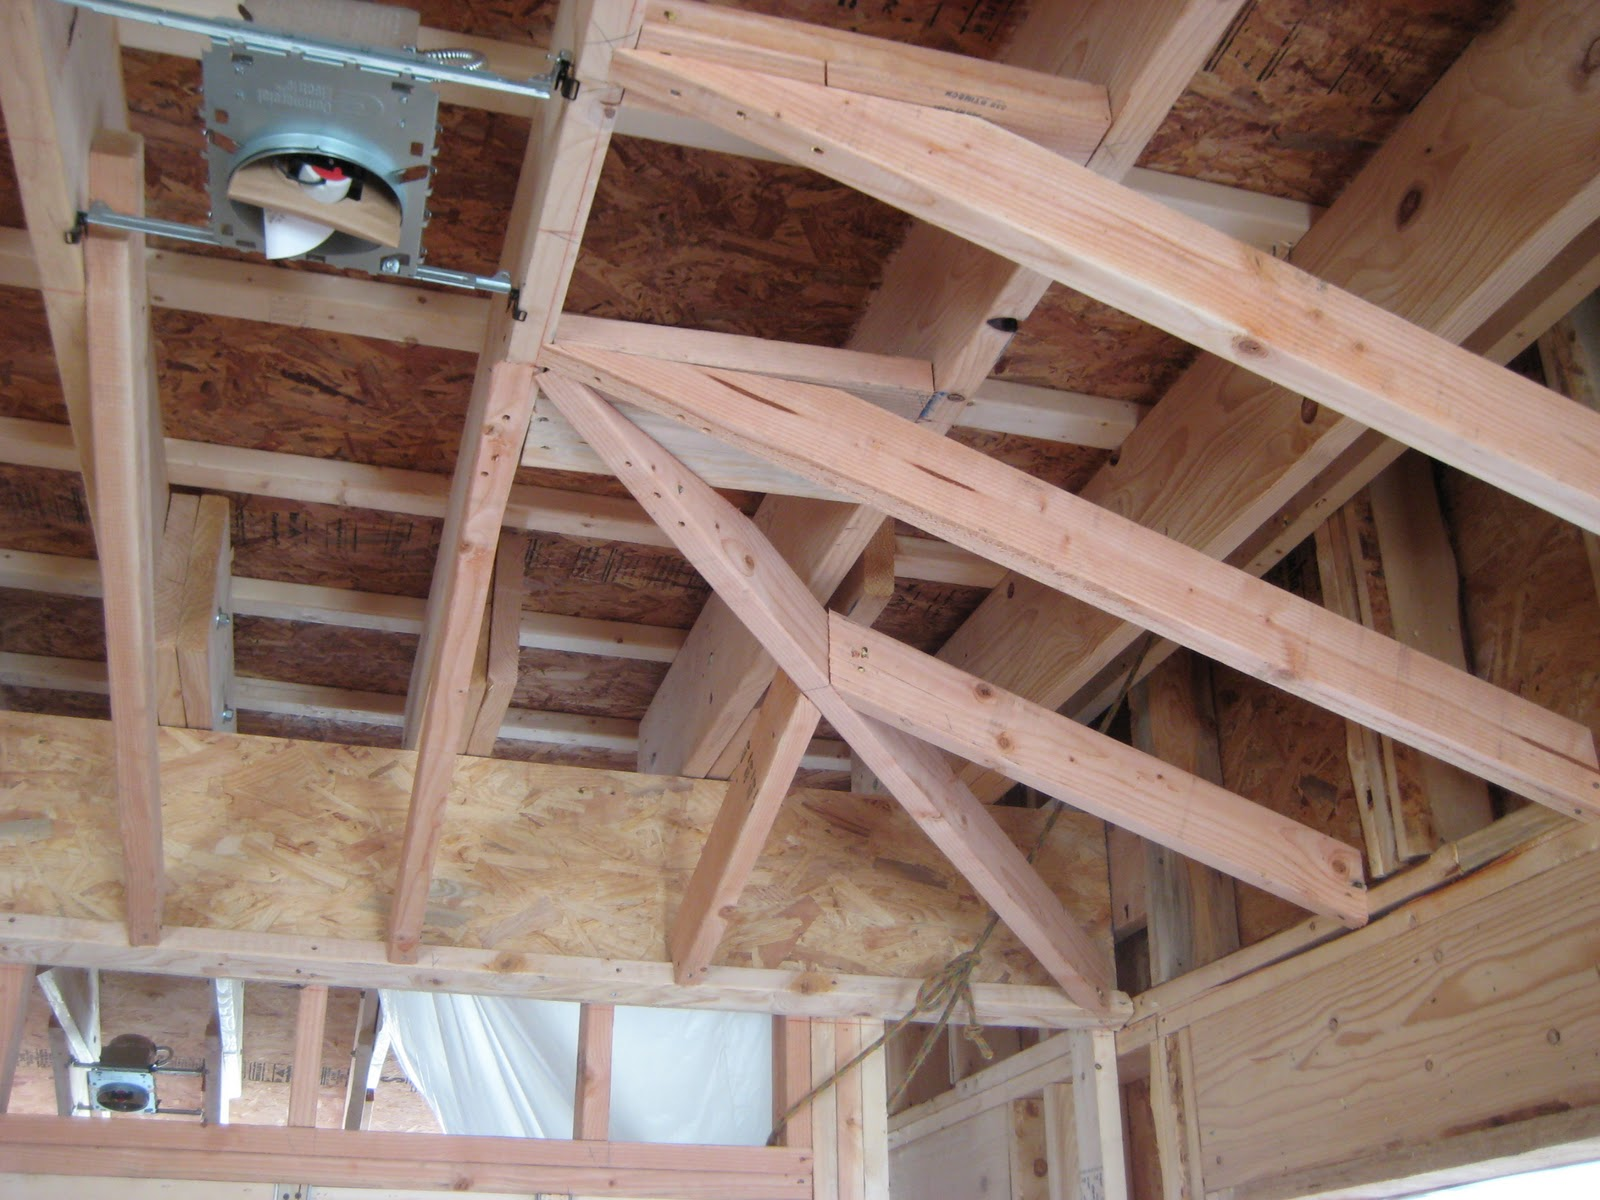 Framing Tray Ceiling: Better Butterworth: Days 45-60